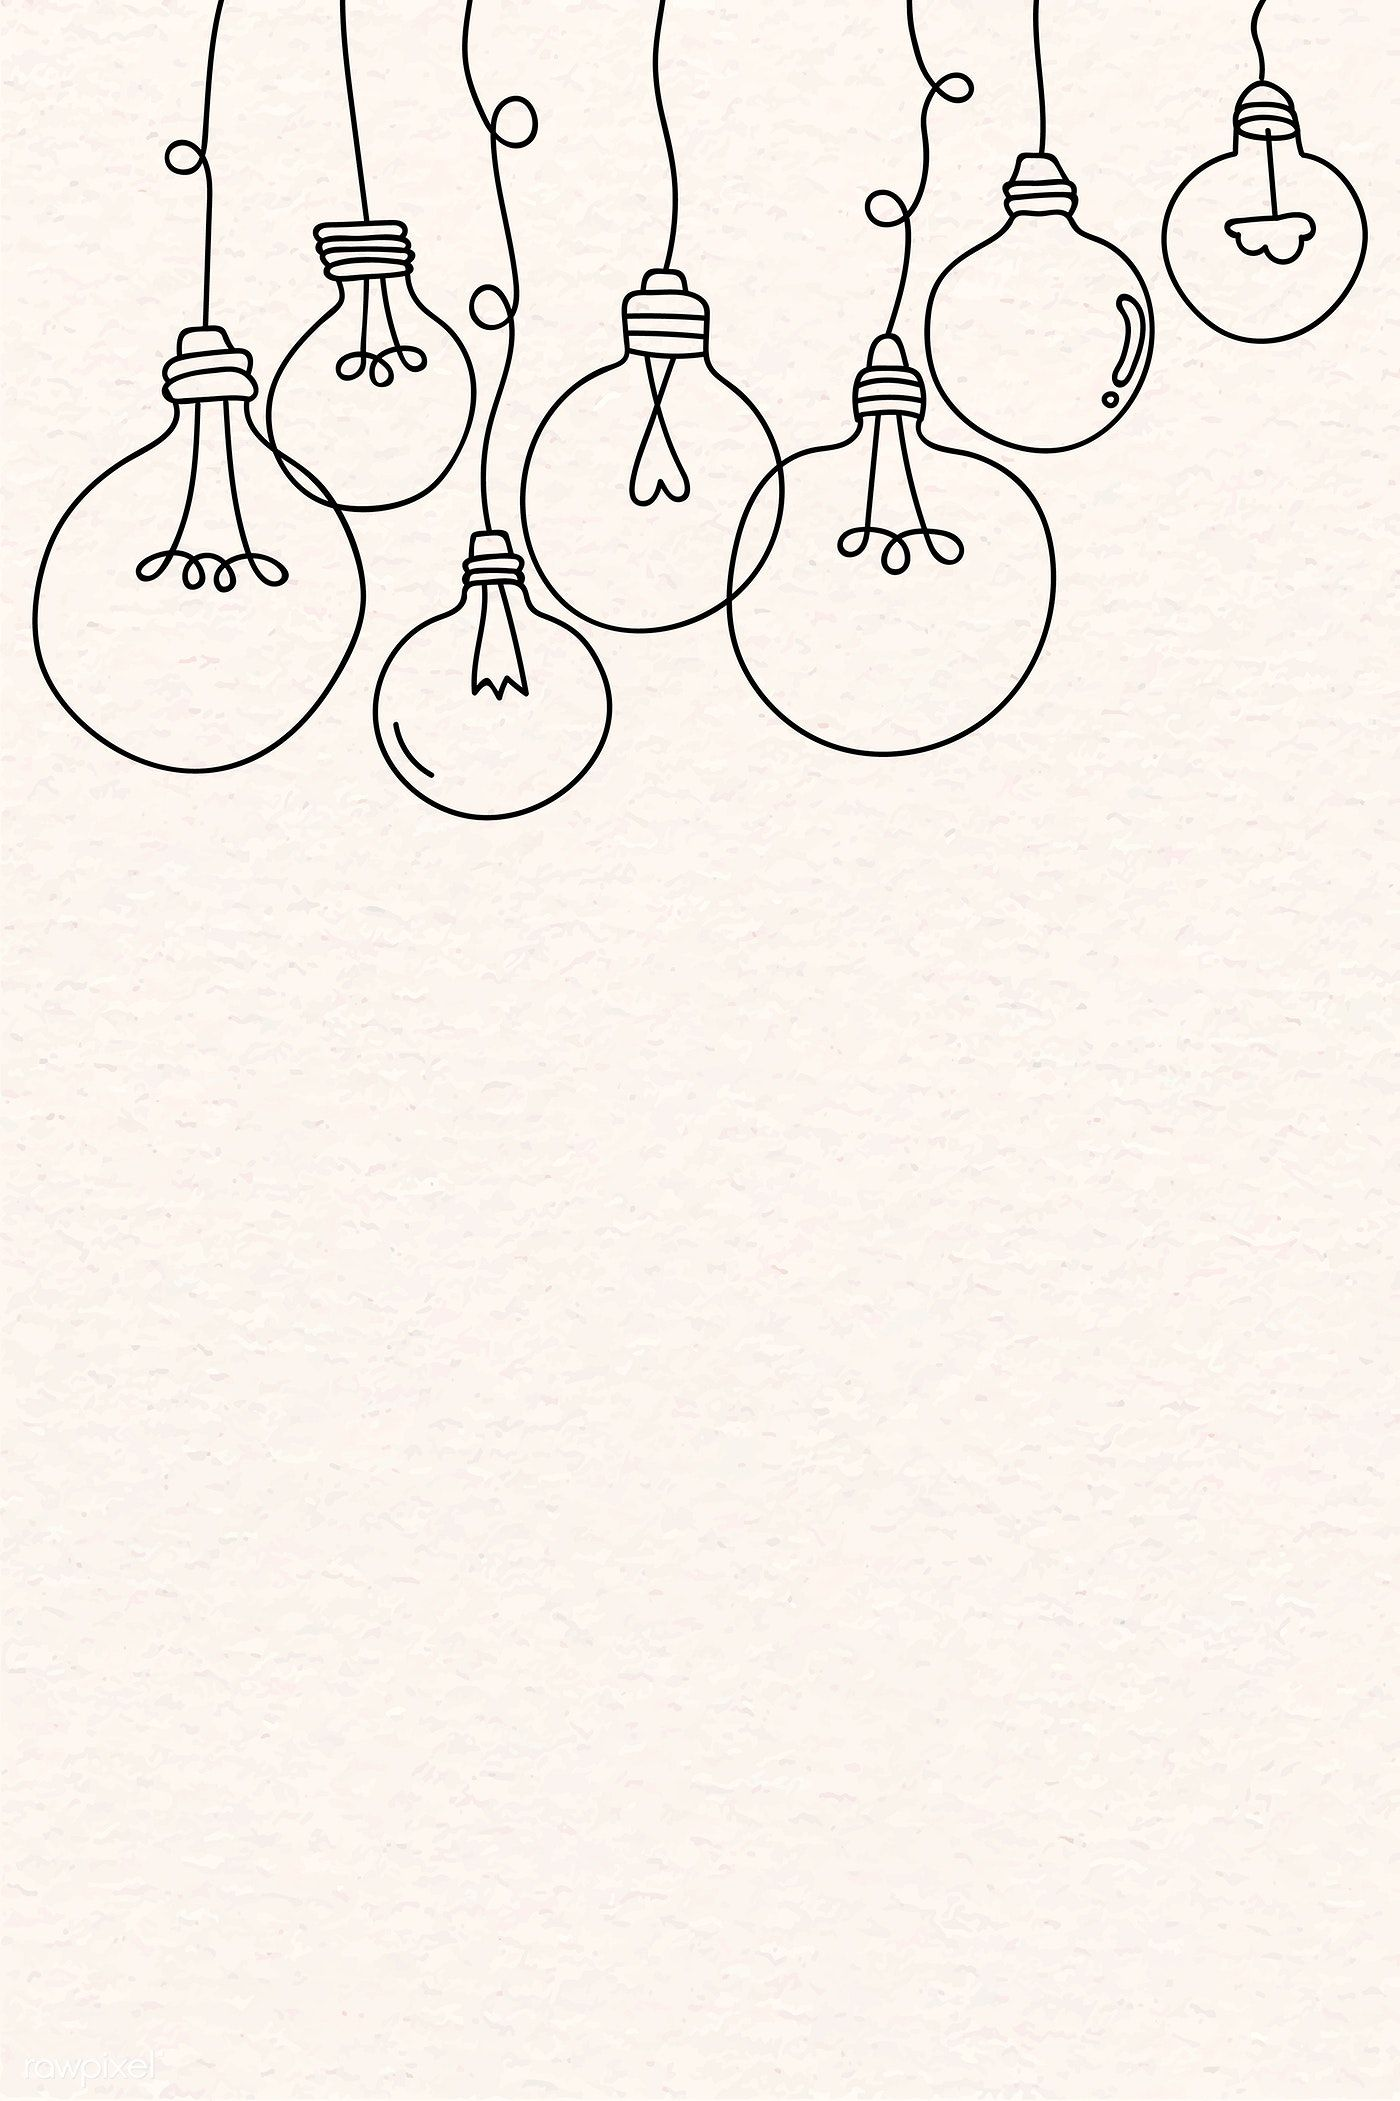 Download Premium Vector Of Creative Light Bulb Doodle On Beige Background Bullet Journal Art Mini Drawings Easy Doodle Art